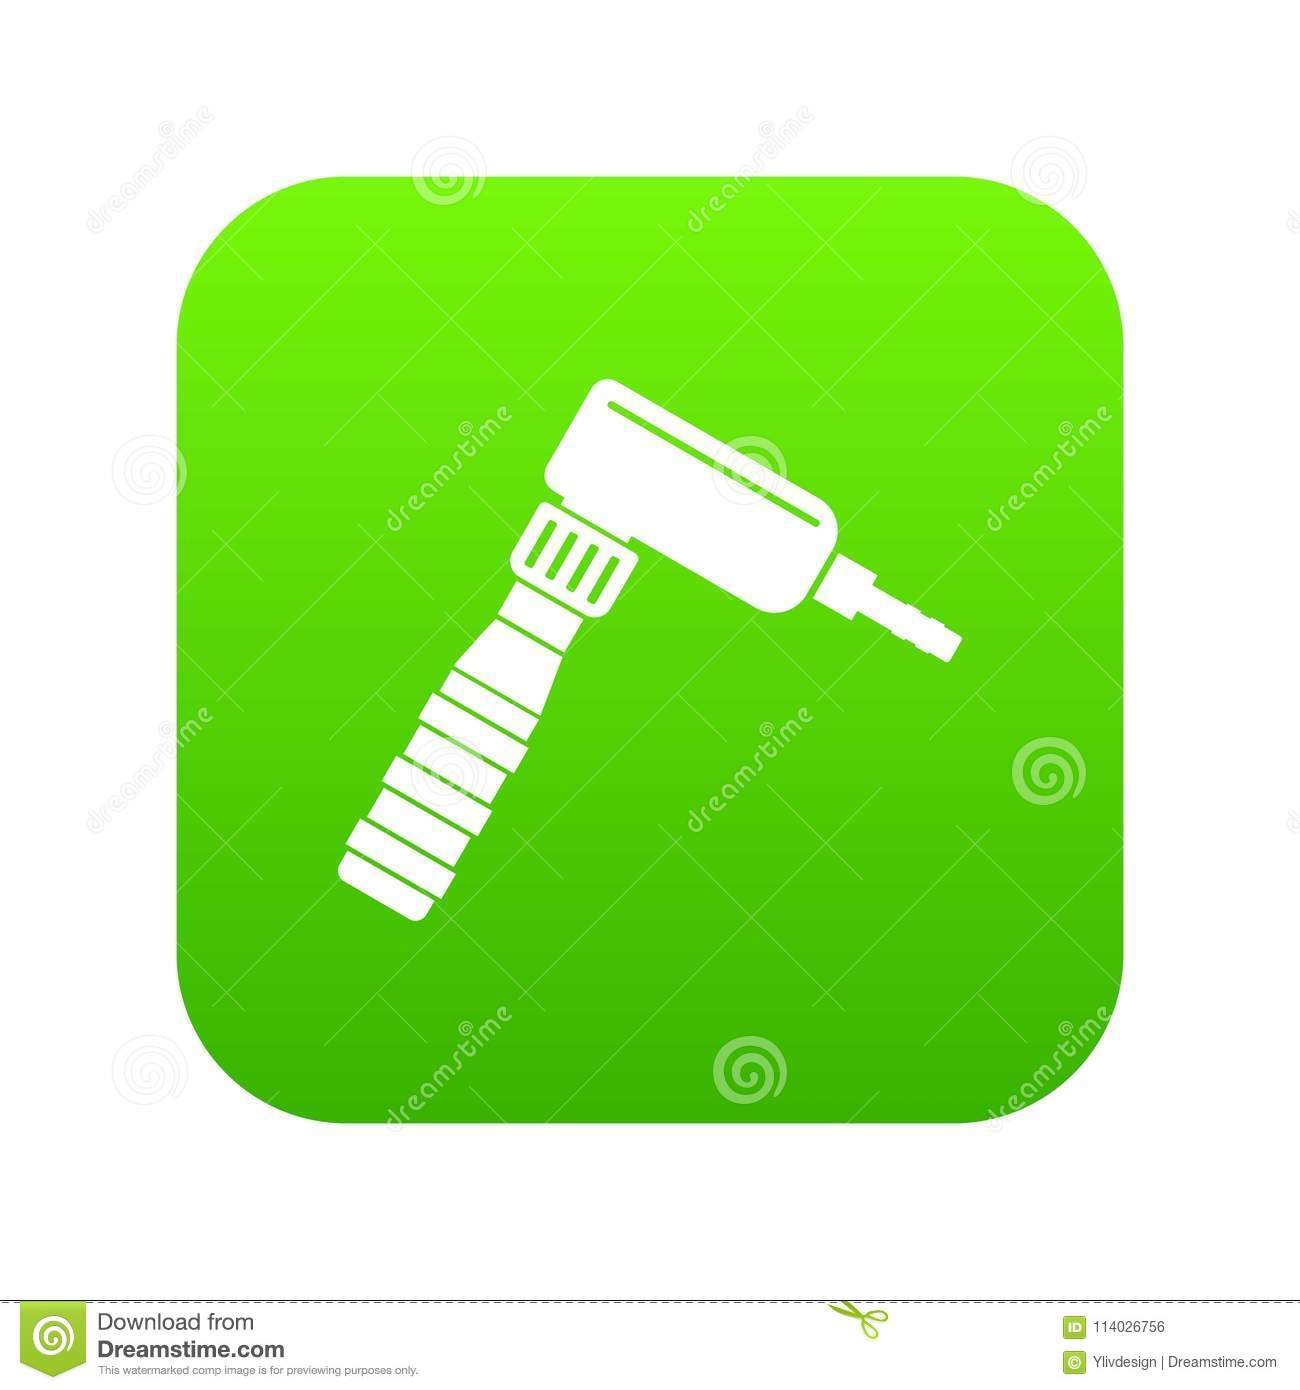 Hand Draw Rotary Tattoo Machine Icon Digital Green Stock Vector Diagram Download Illustration Of Electric